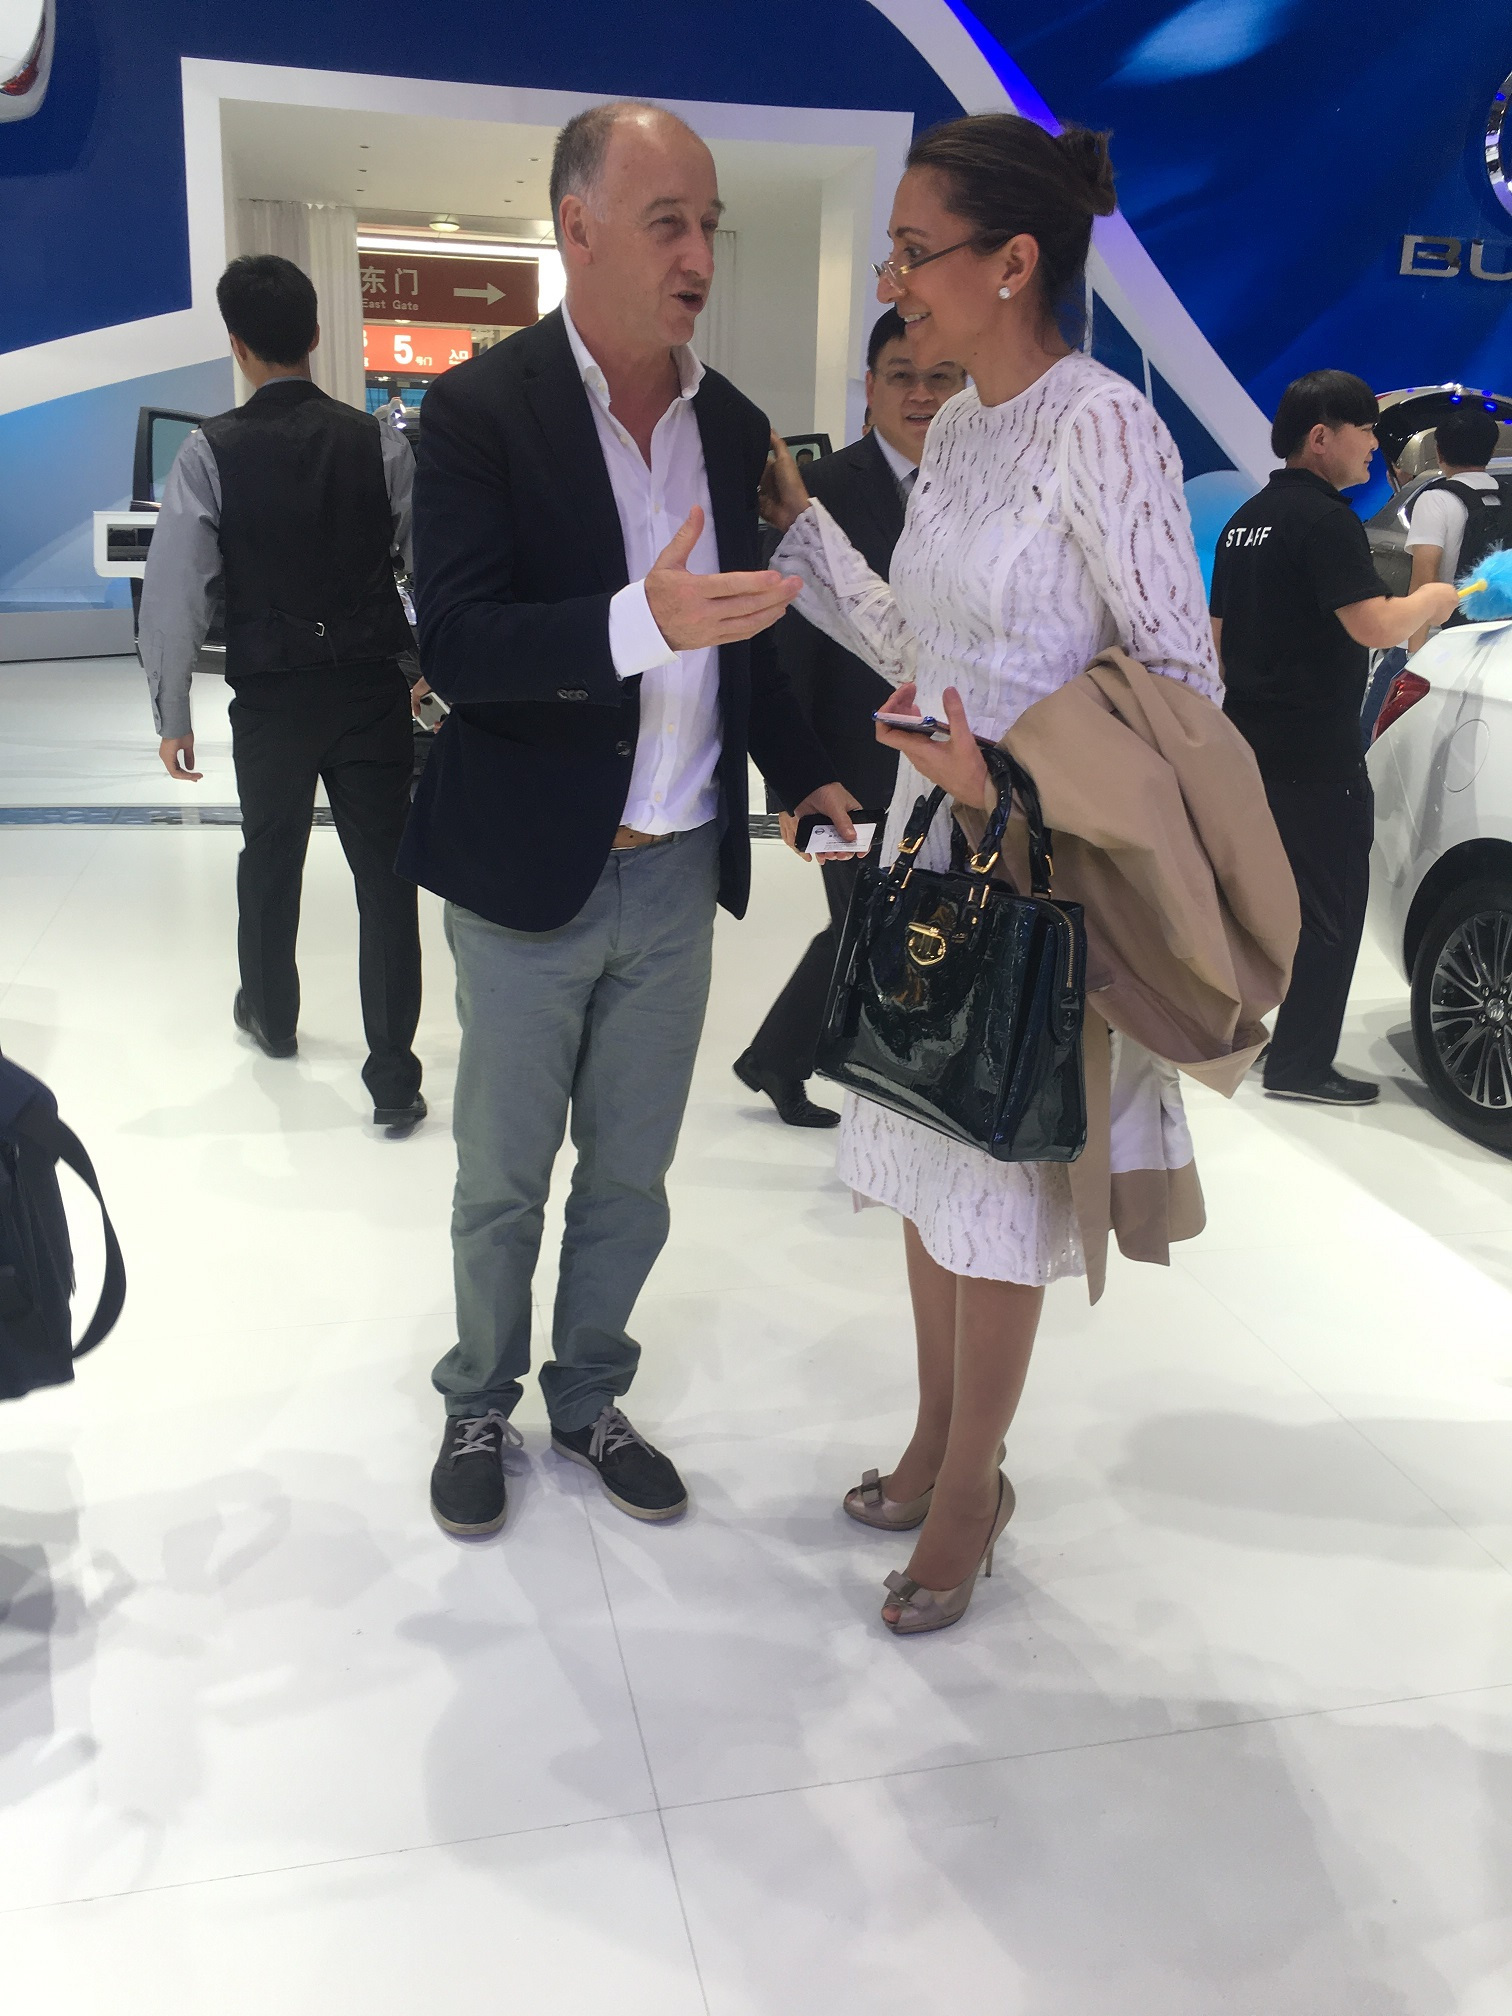 Kevin Wale, previous President and Managing Director of General Motors China and LIASE Group Managing Director Vanessa Moriel discuss on the sidelines of the 2016 China Auto Show in Beijing.